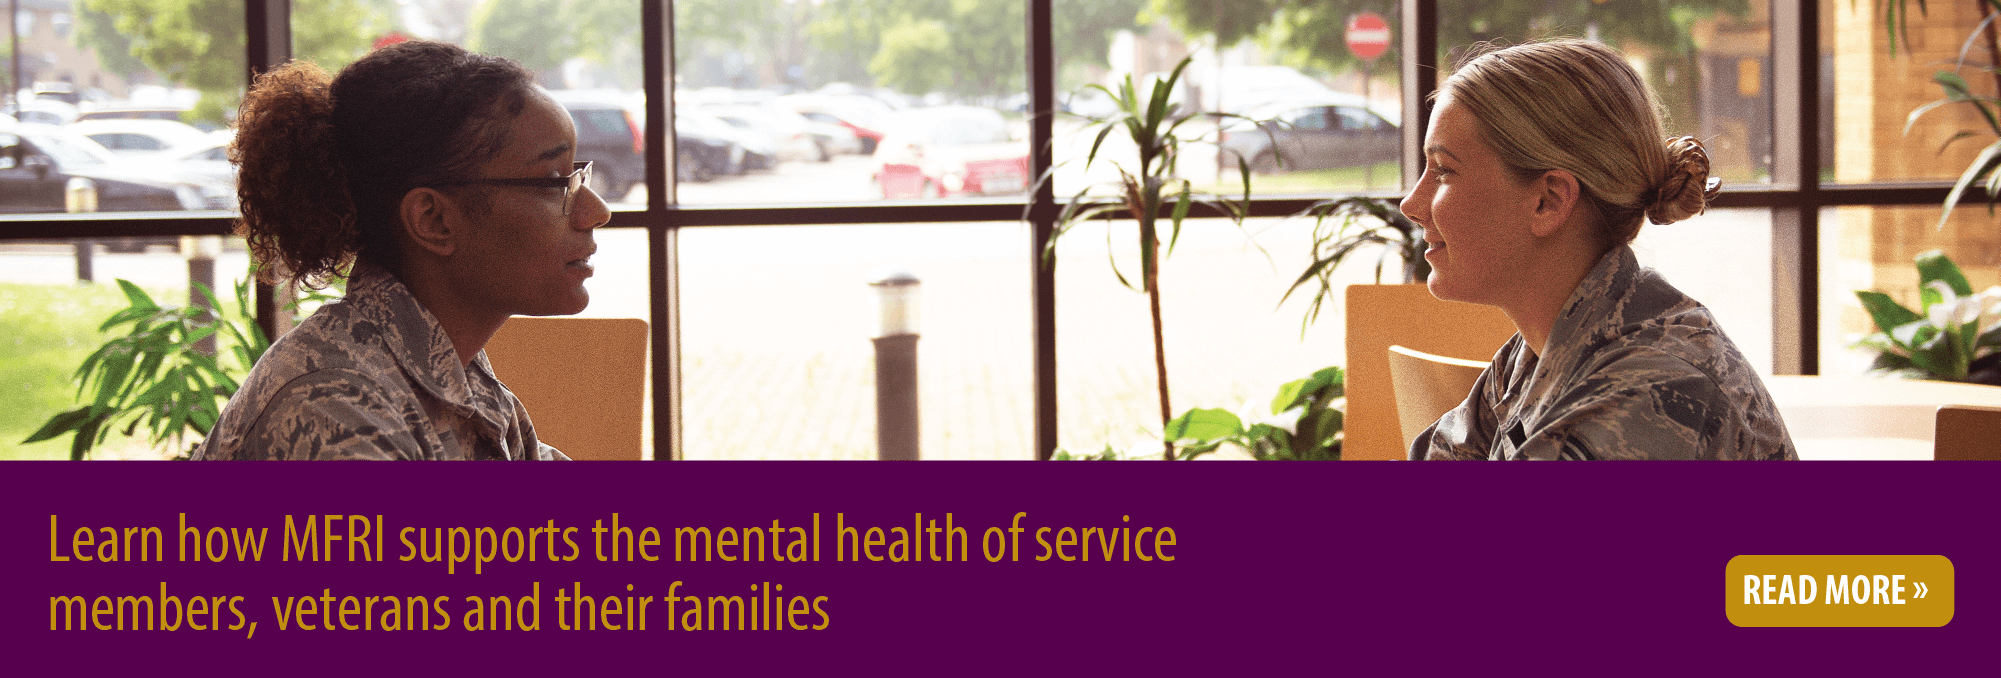 Learn how MFRI supports the mental health of service members, veterans and their families Read more